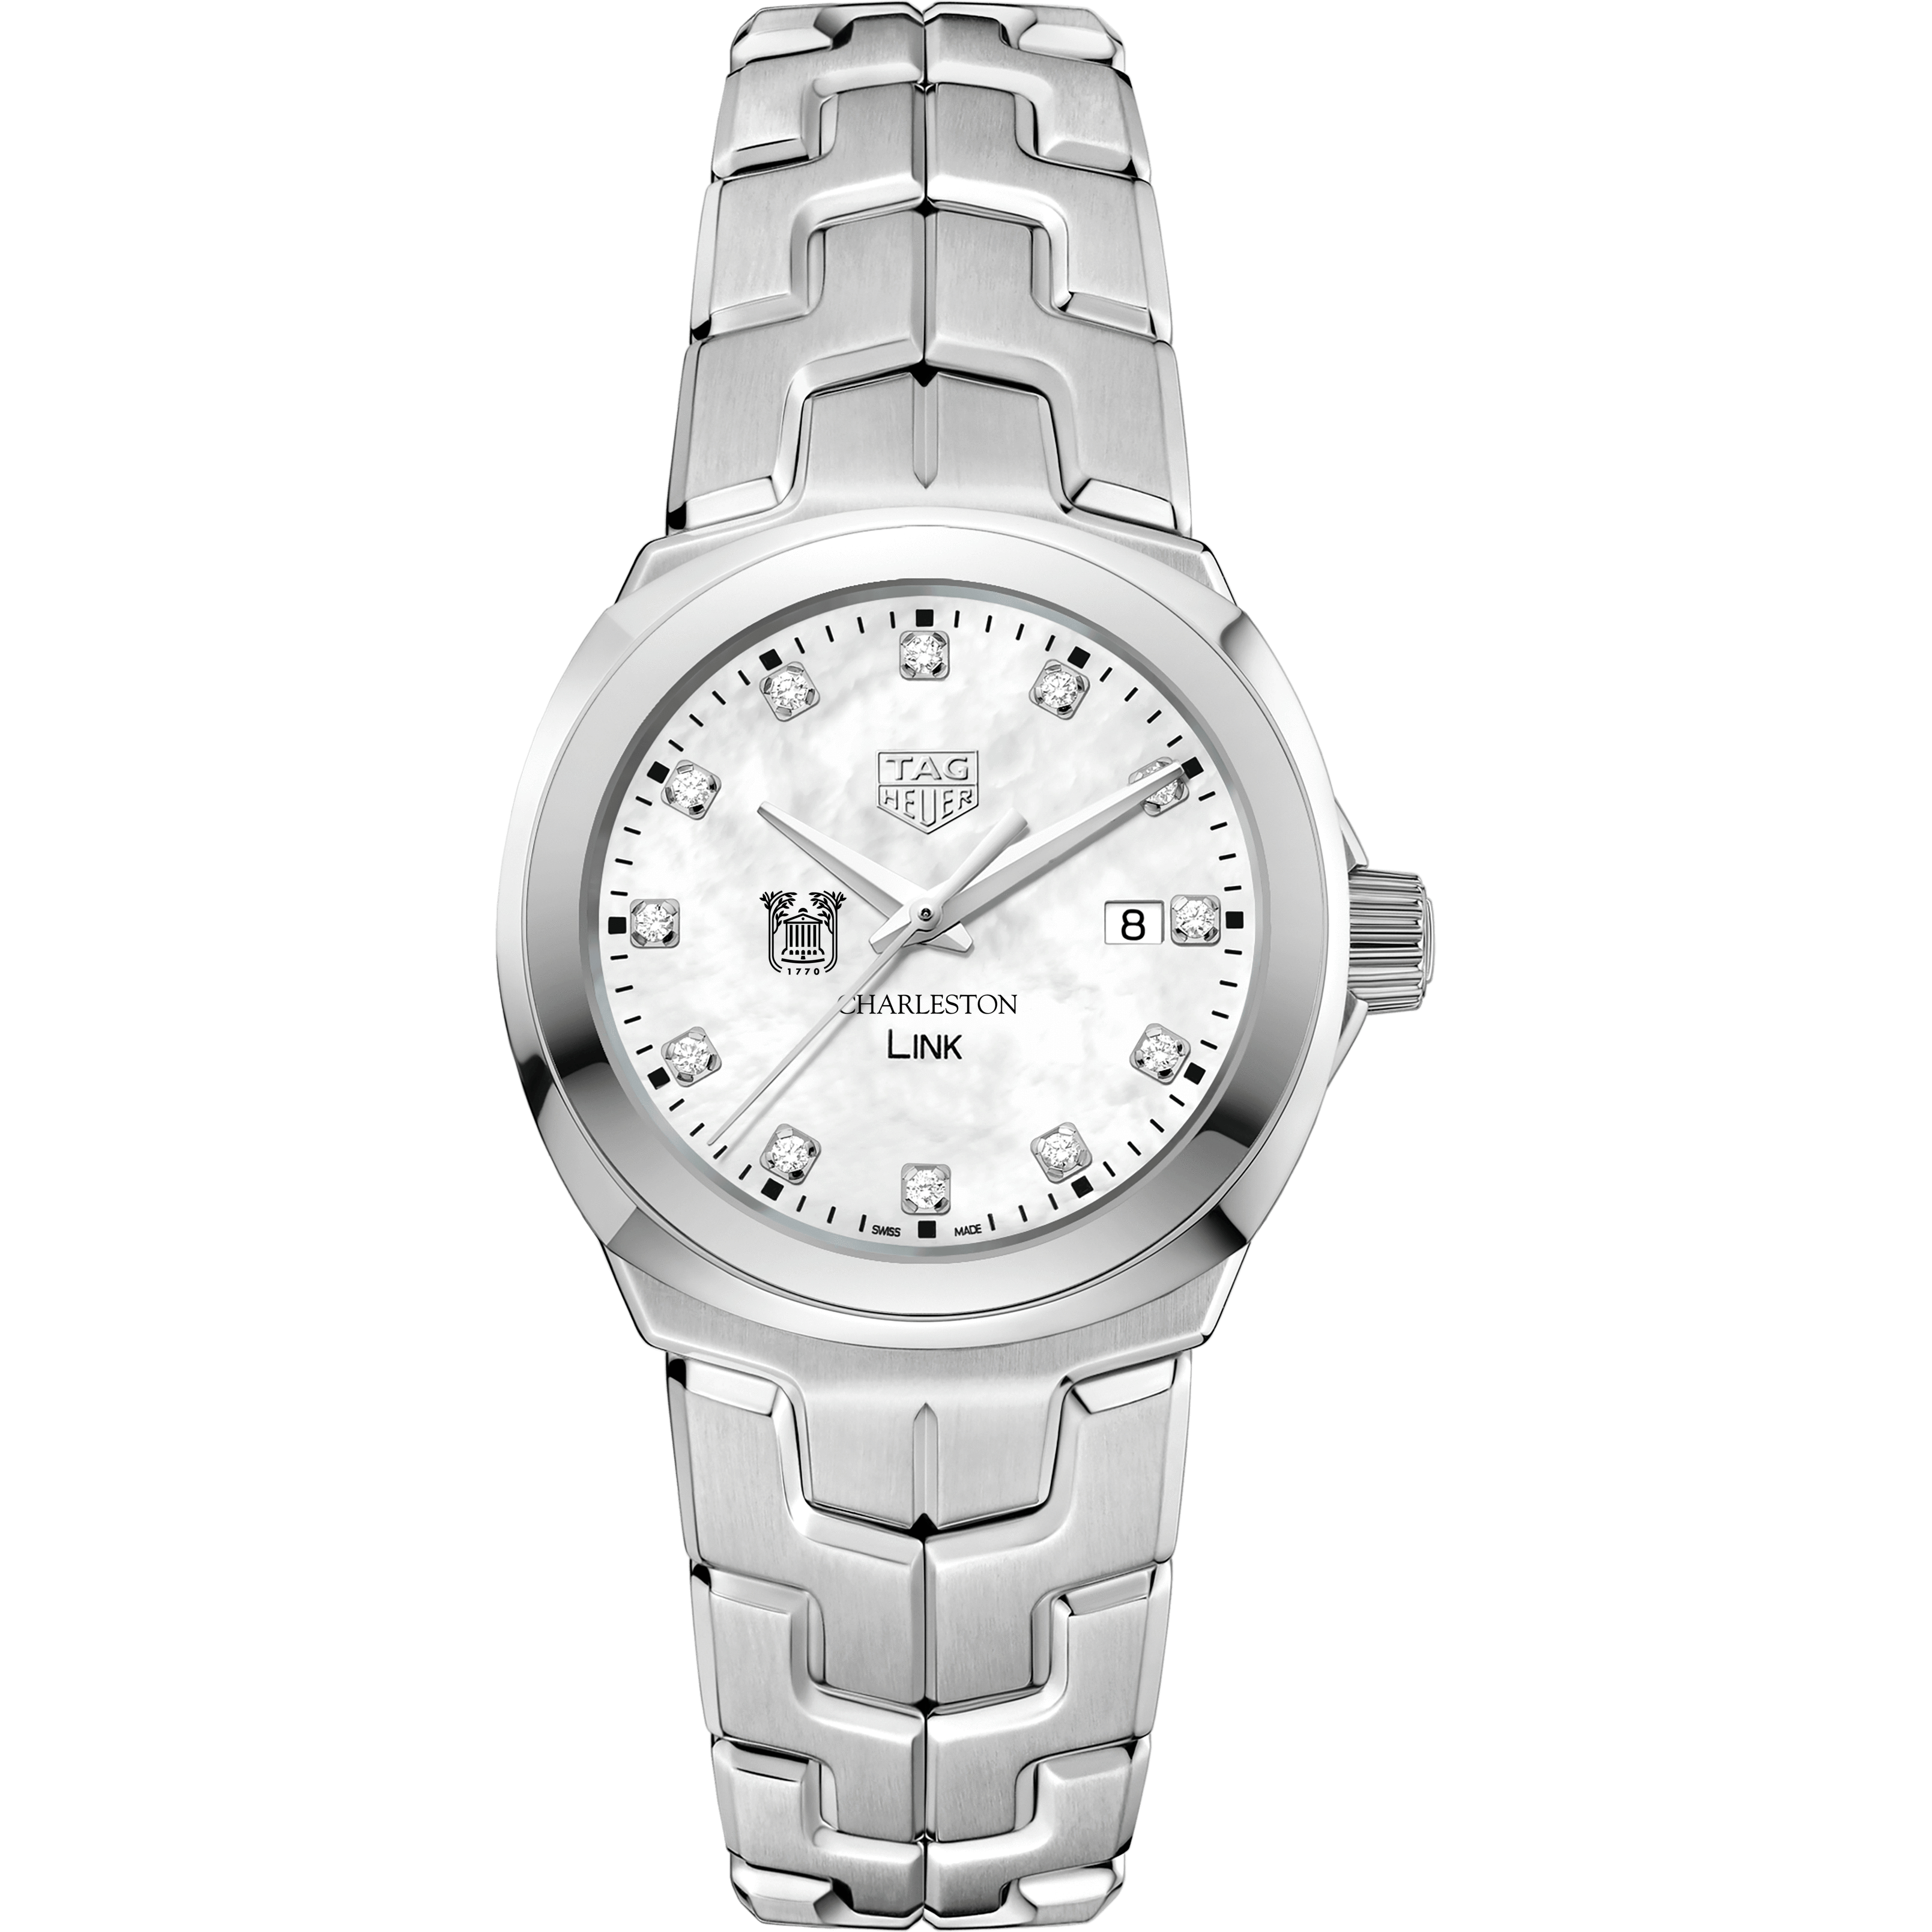 College of Charleston TAG Heuer Diamond Dial LINK for Women - Image 2